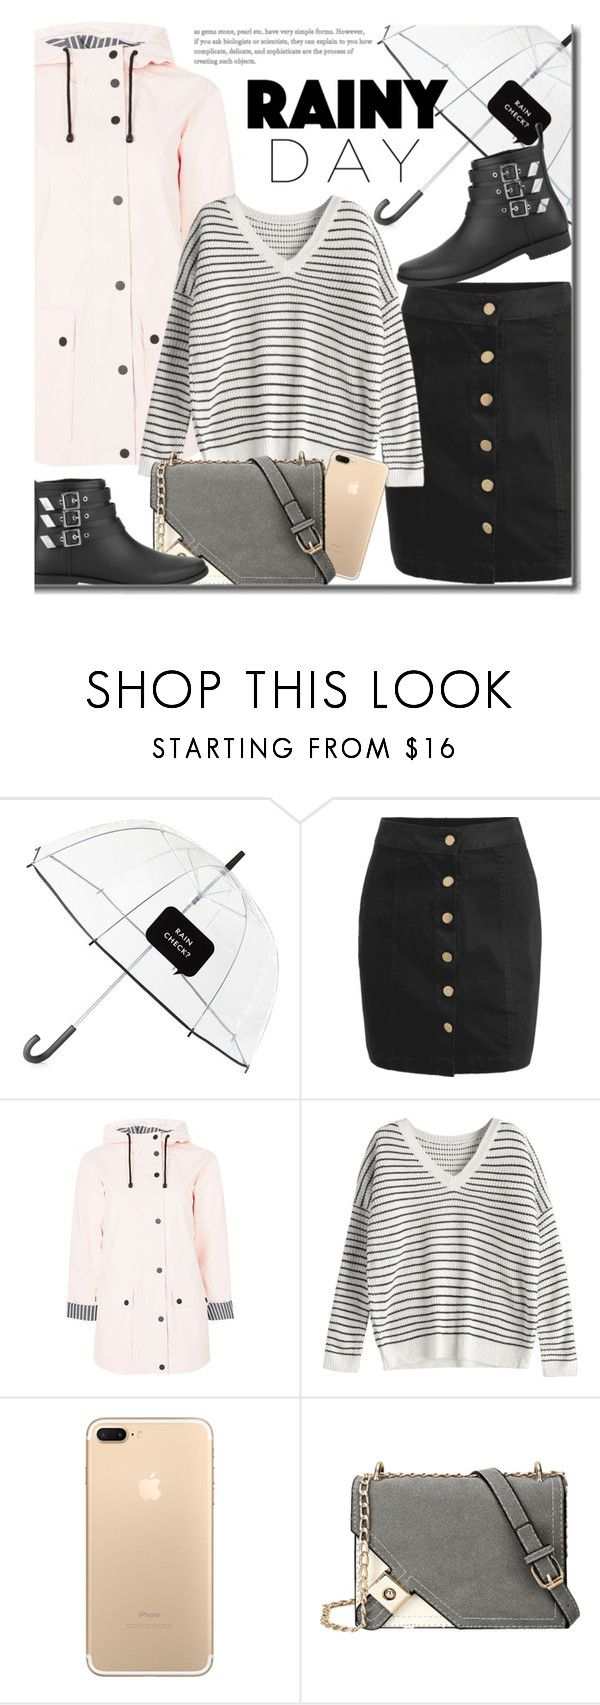 """Splish Splash: Rainy Day Style"" by justkejti ❤ liked on Polyvore featuring Kate Spade, Topshop, Loeffler Randall, StreetStyle, rainyday and zaful"